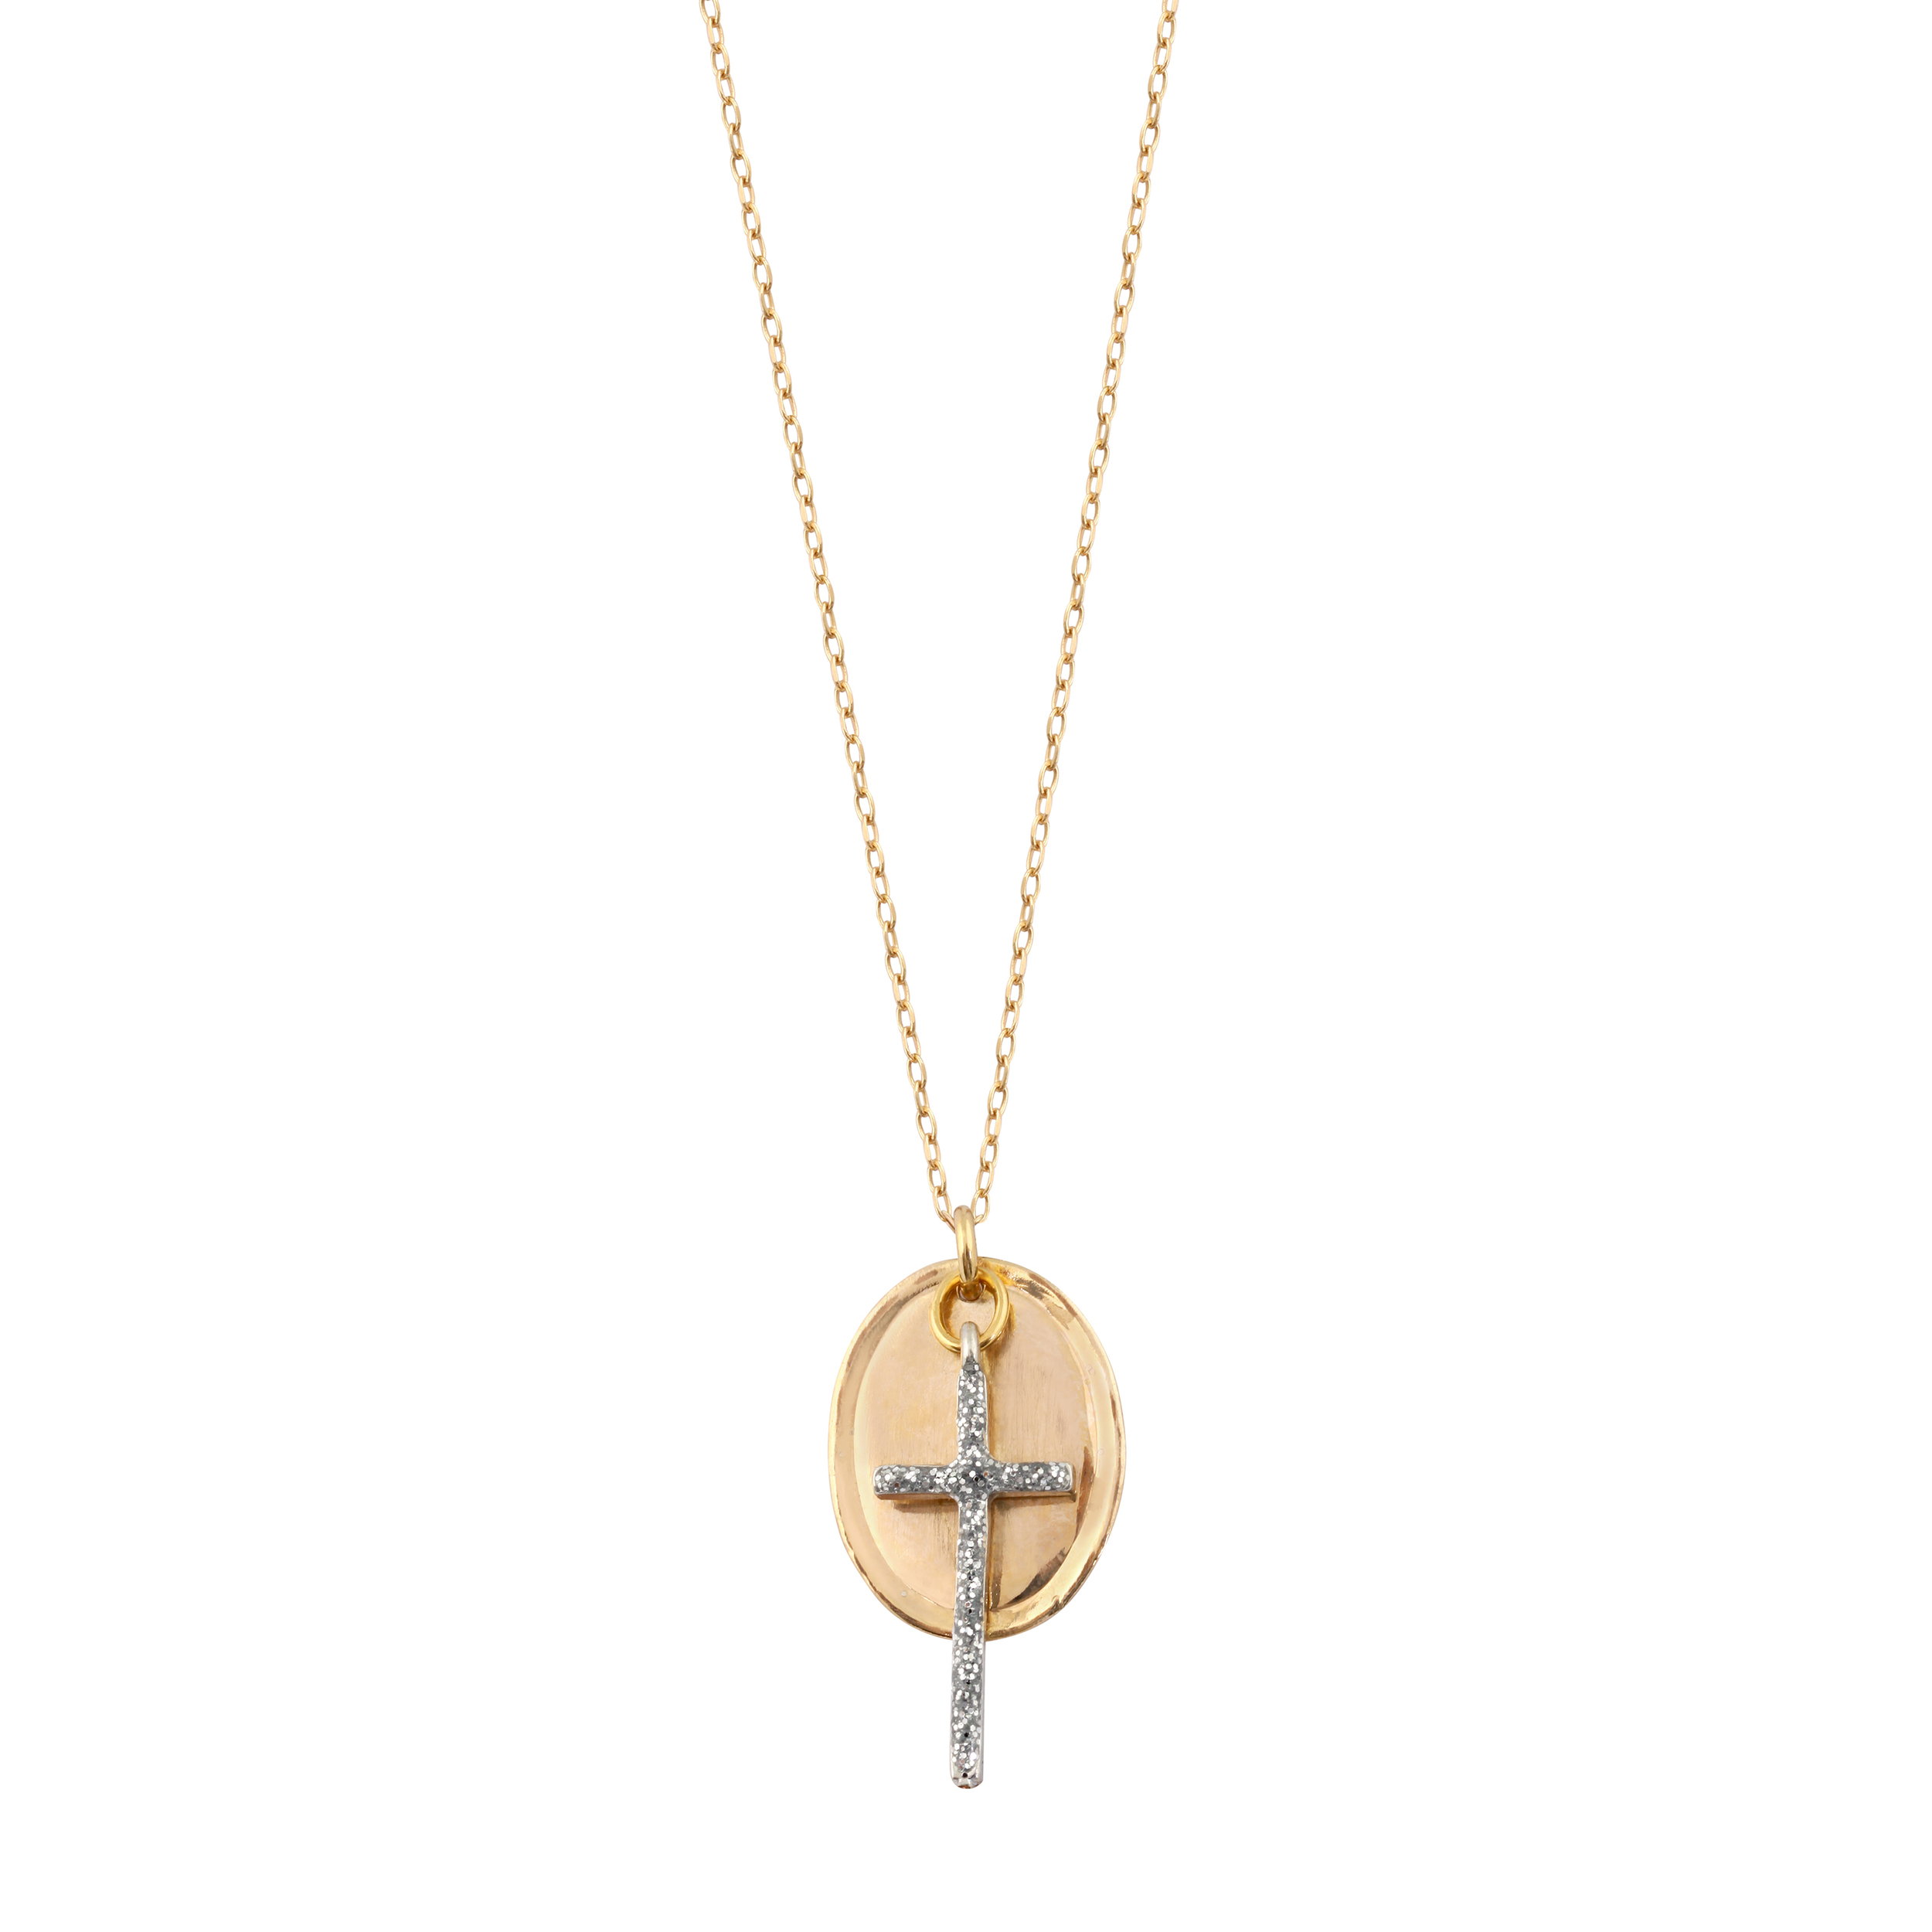 CO_LSONGE_MEDAILLE_OVALE_CROIX_L_DORE_120